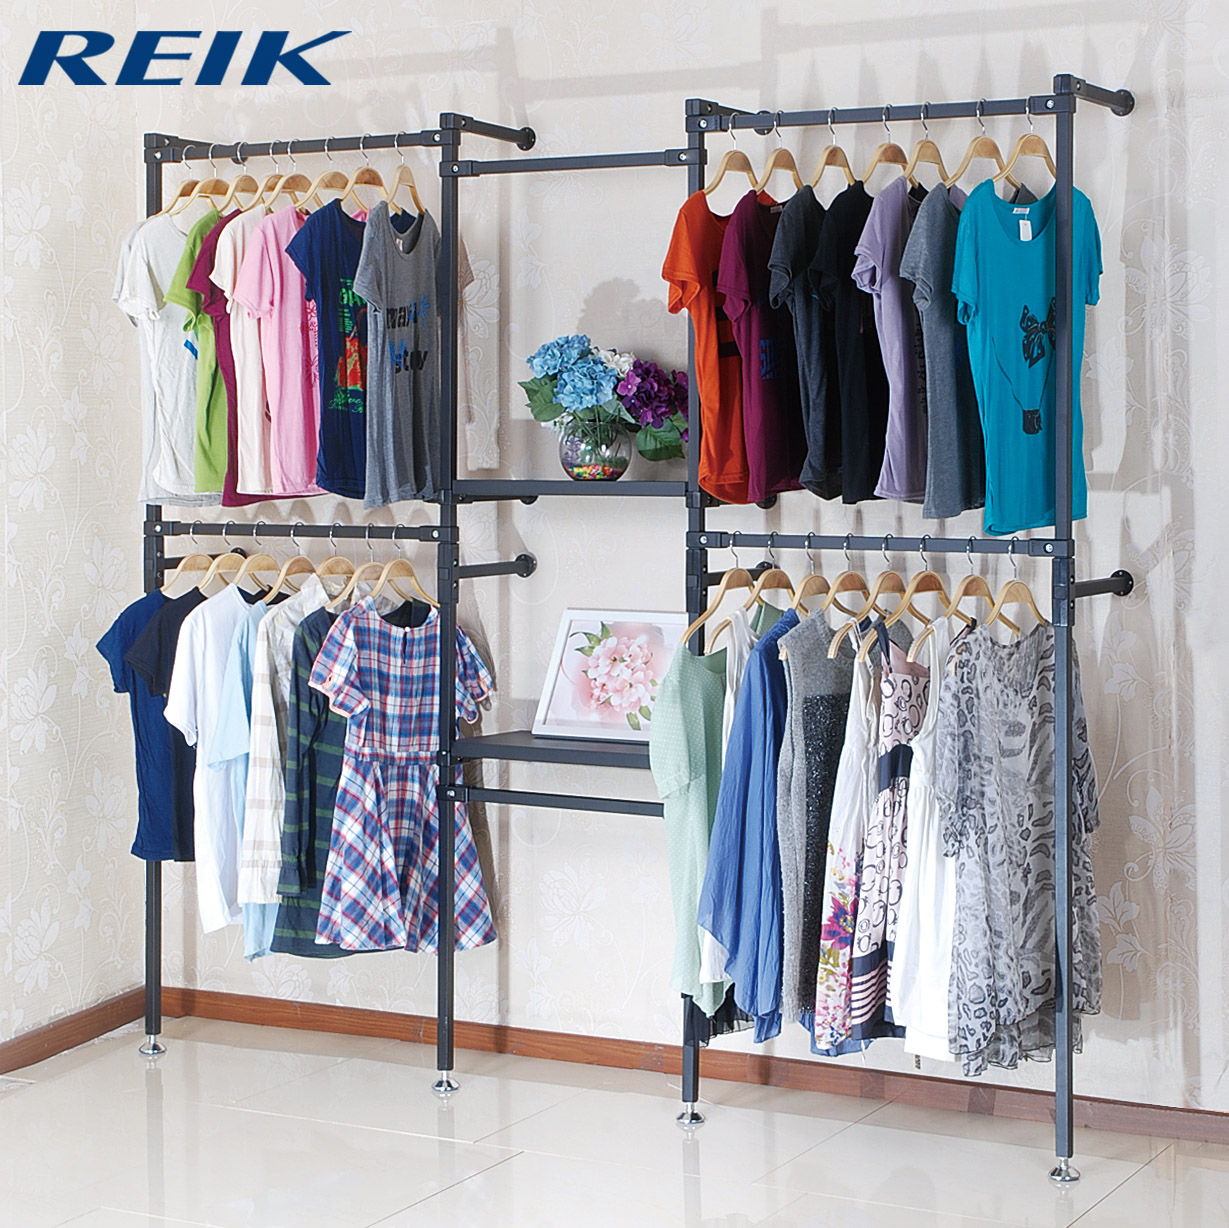 Buy rui grams dual wall shelf display rack clothing clothing rack on the wall clothing display rack clothes rack in cheap price on m alibaba com